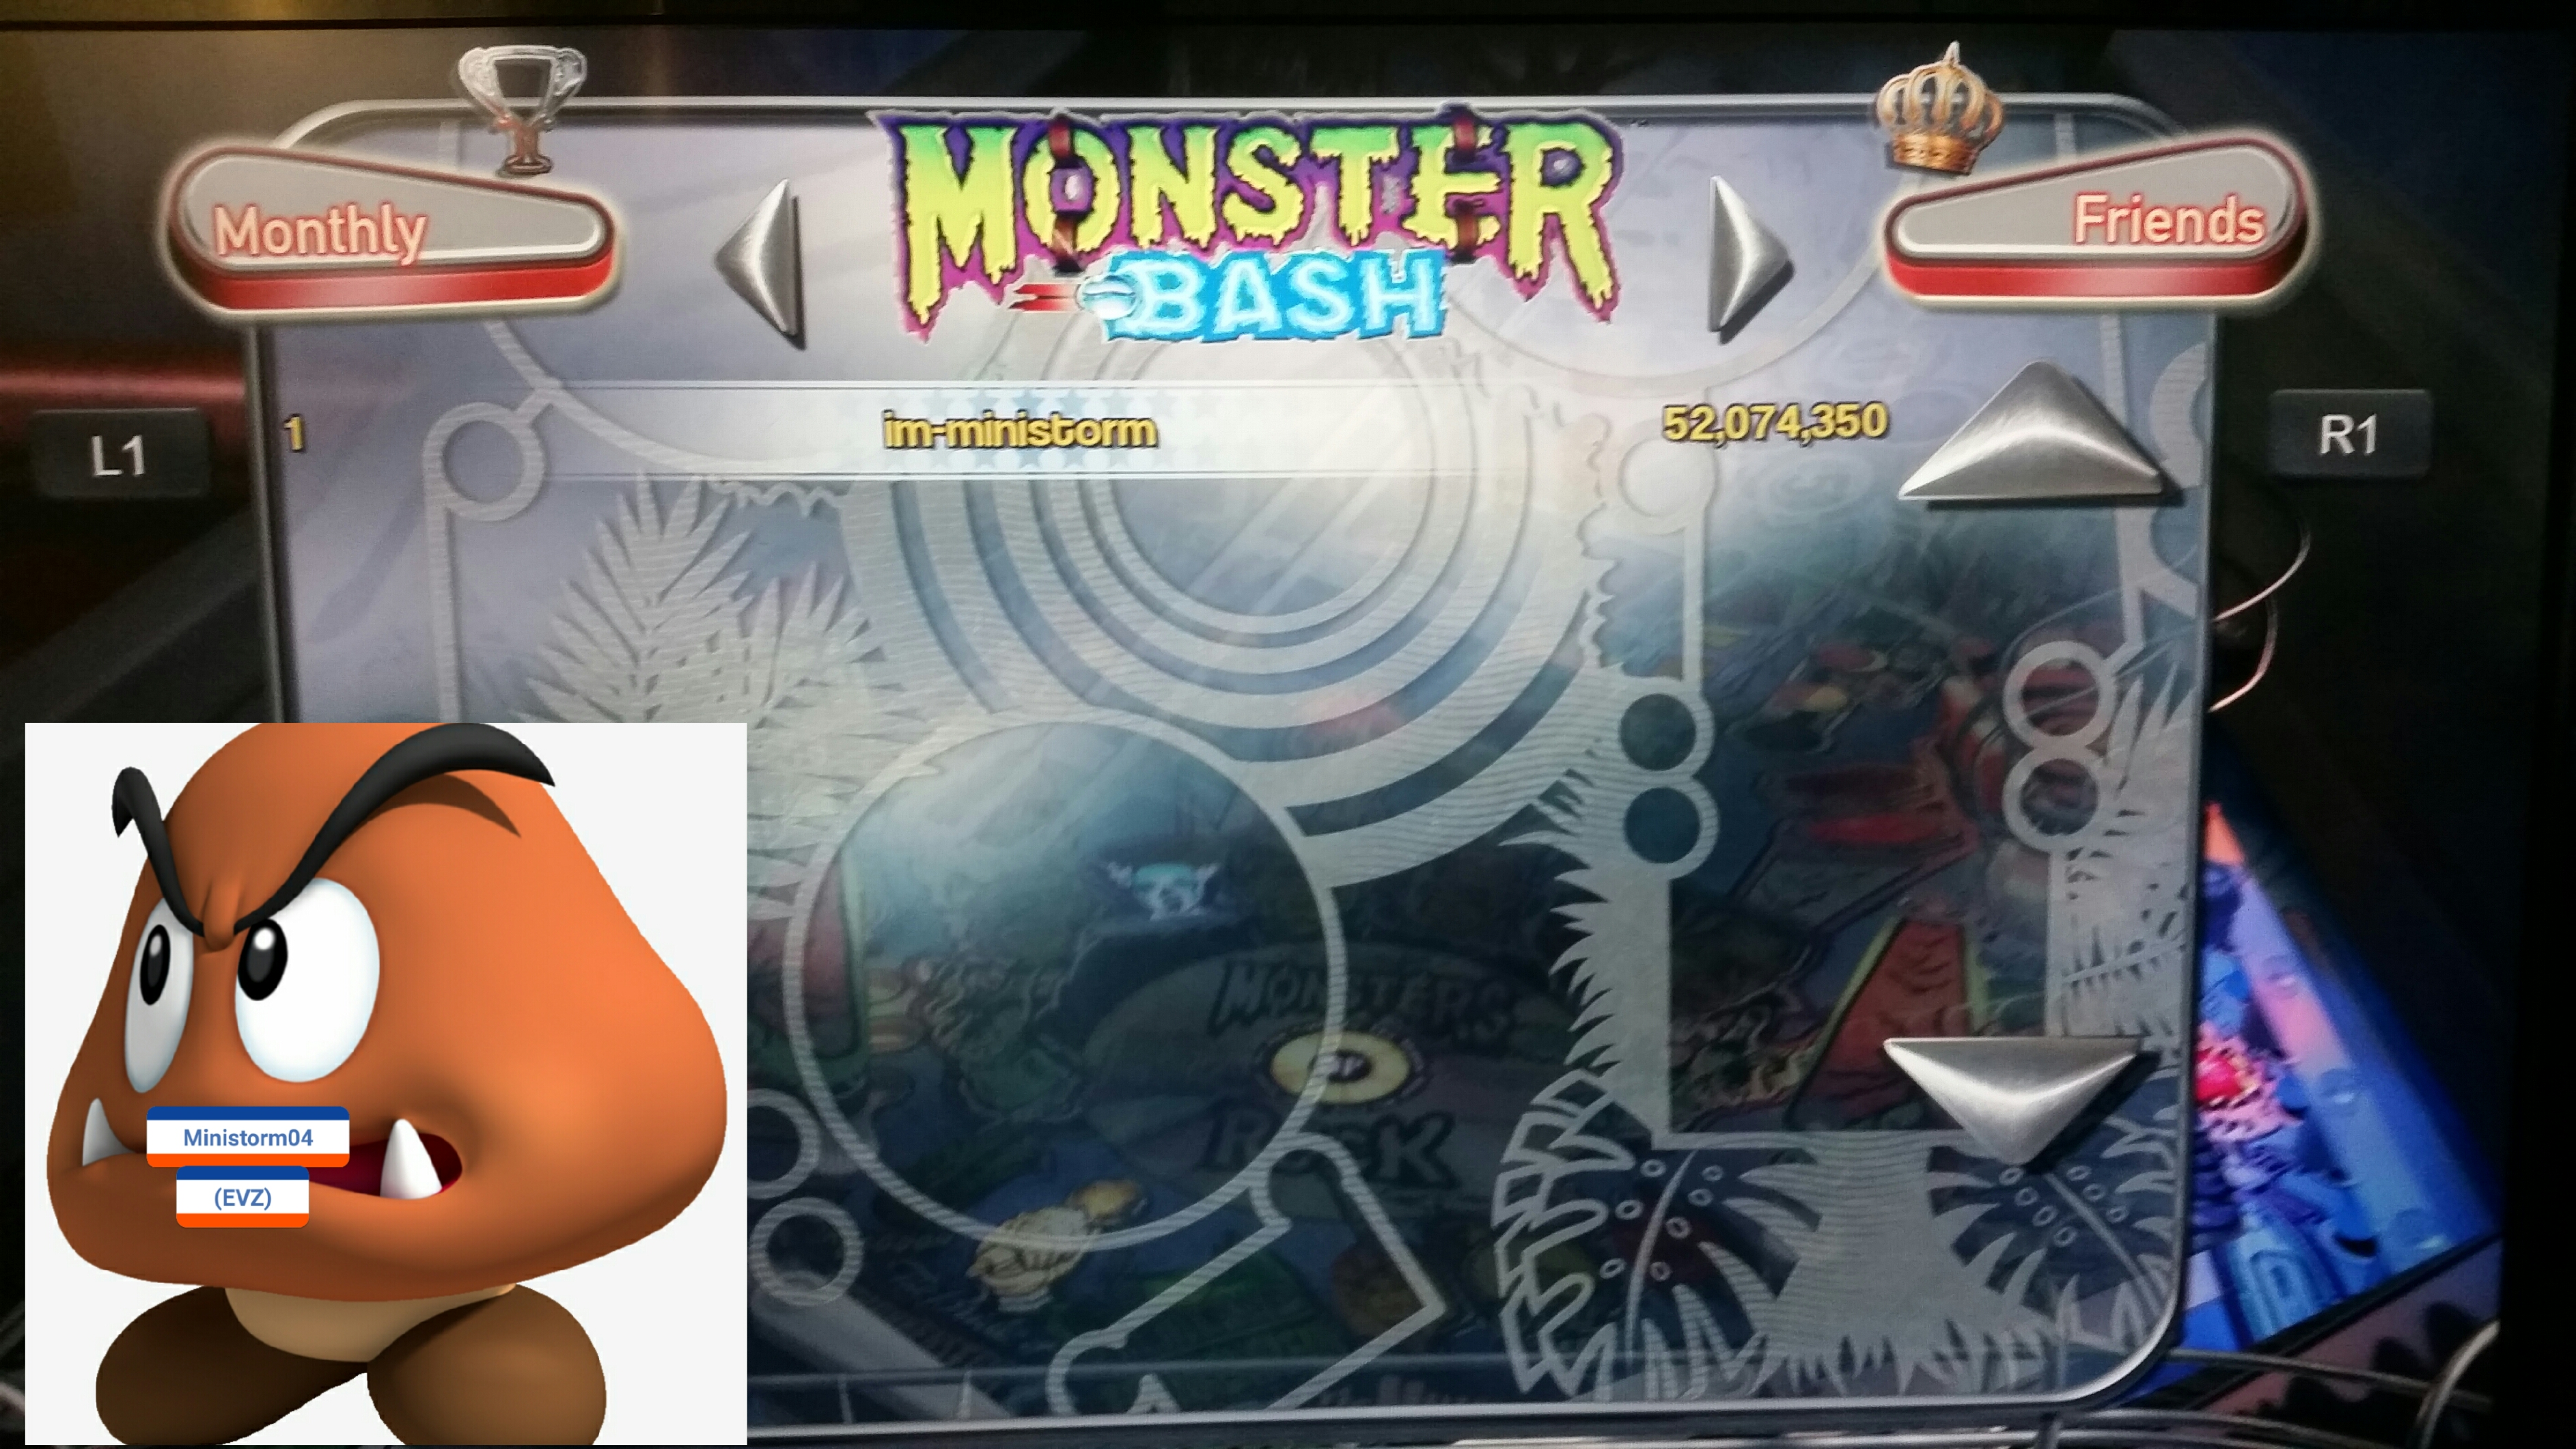 Pinball Arcade: Monster Bash 52,074,350 points